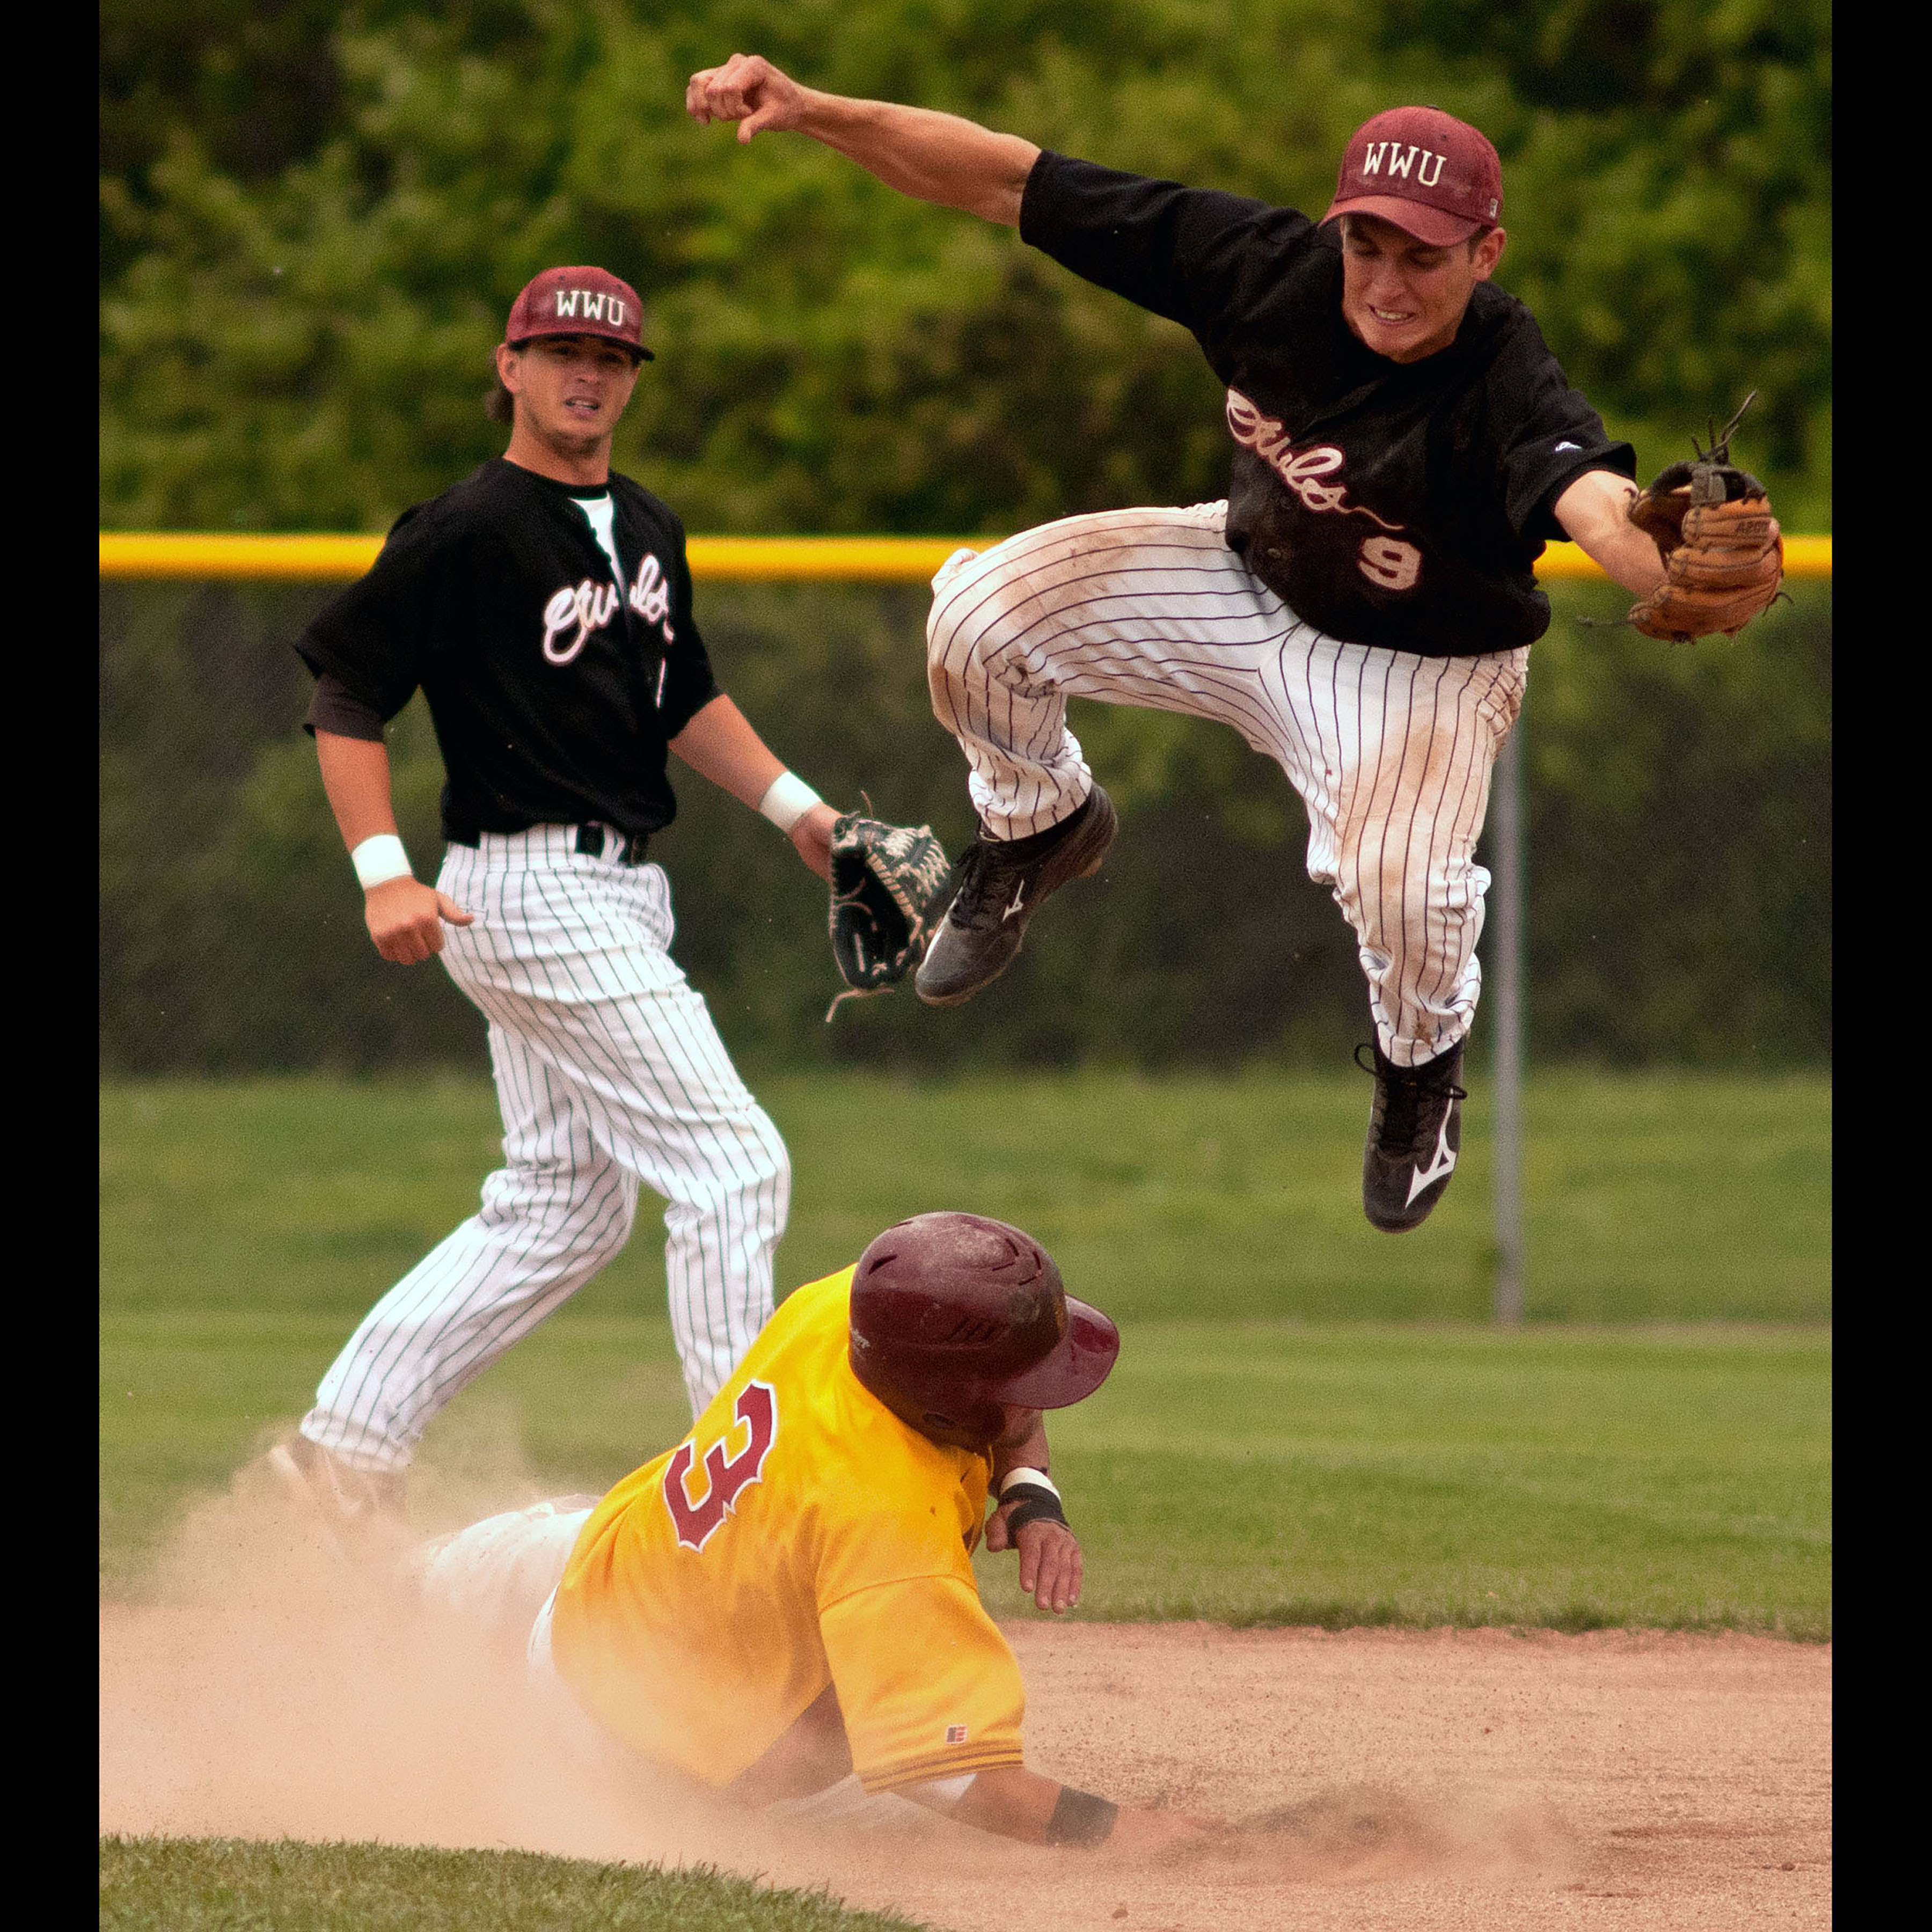 A photo of a baseball player in the air trying to catch a ball, while a player from another team slides into base.